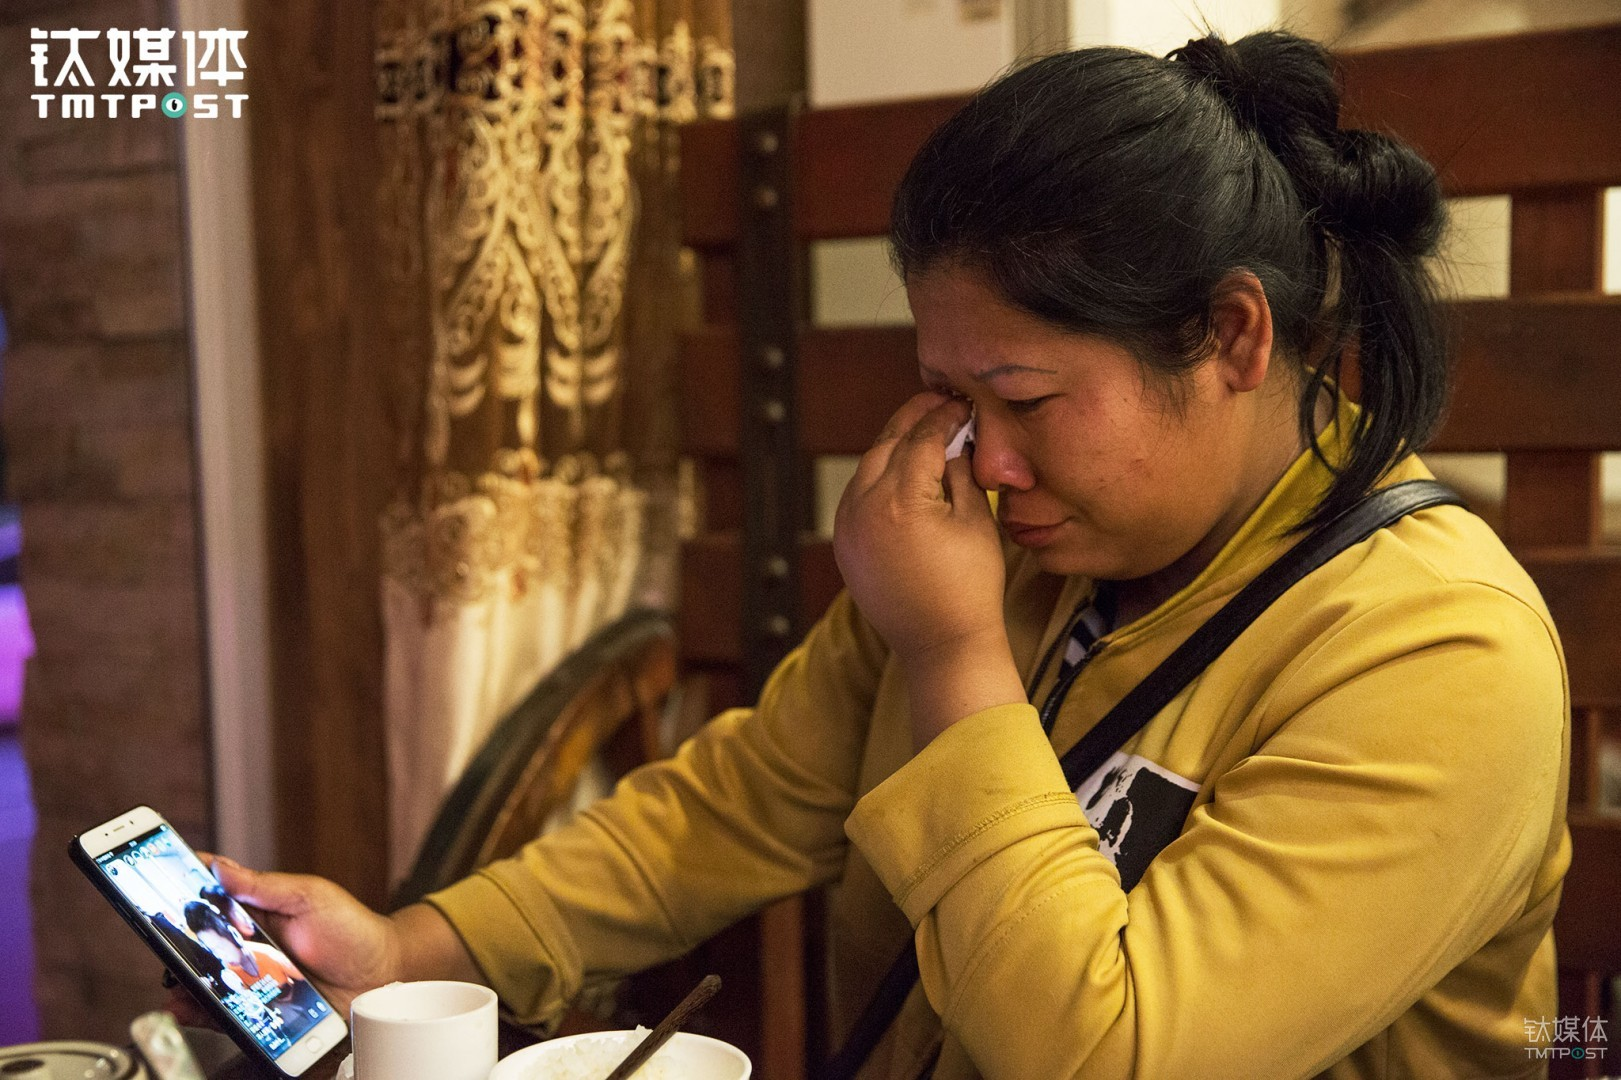 They hadn't seen their kid for two months. During dinner, their 11-year-old kid sang for his mom through video chat. Wang Jing couldn't hold back her tears when she saw her kid.